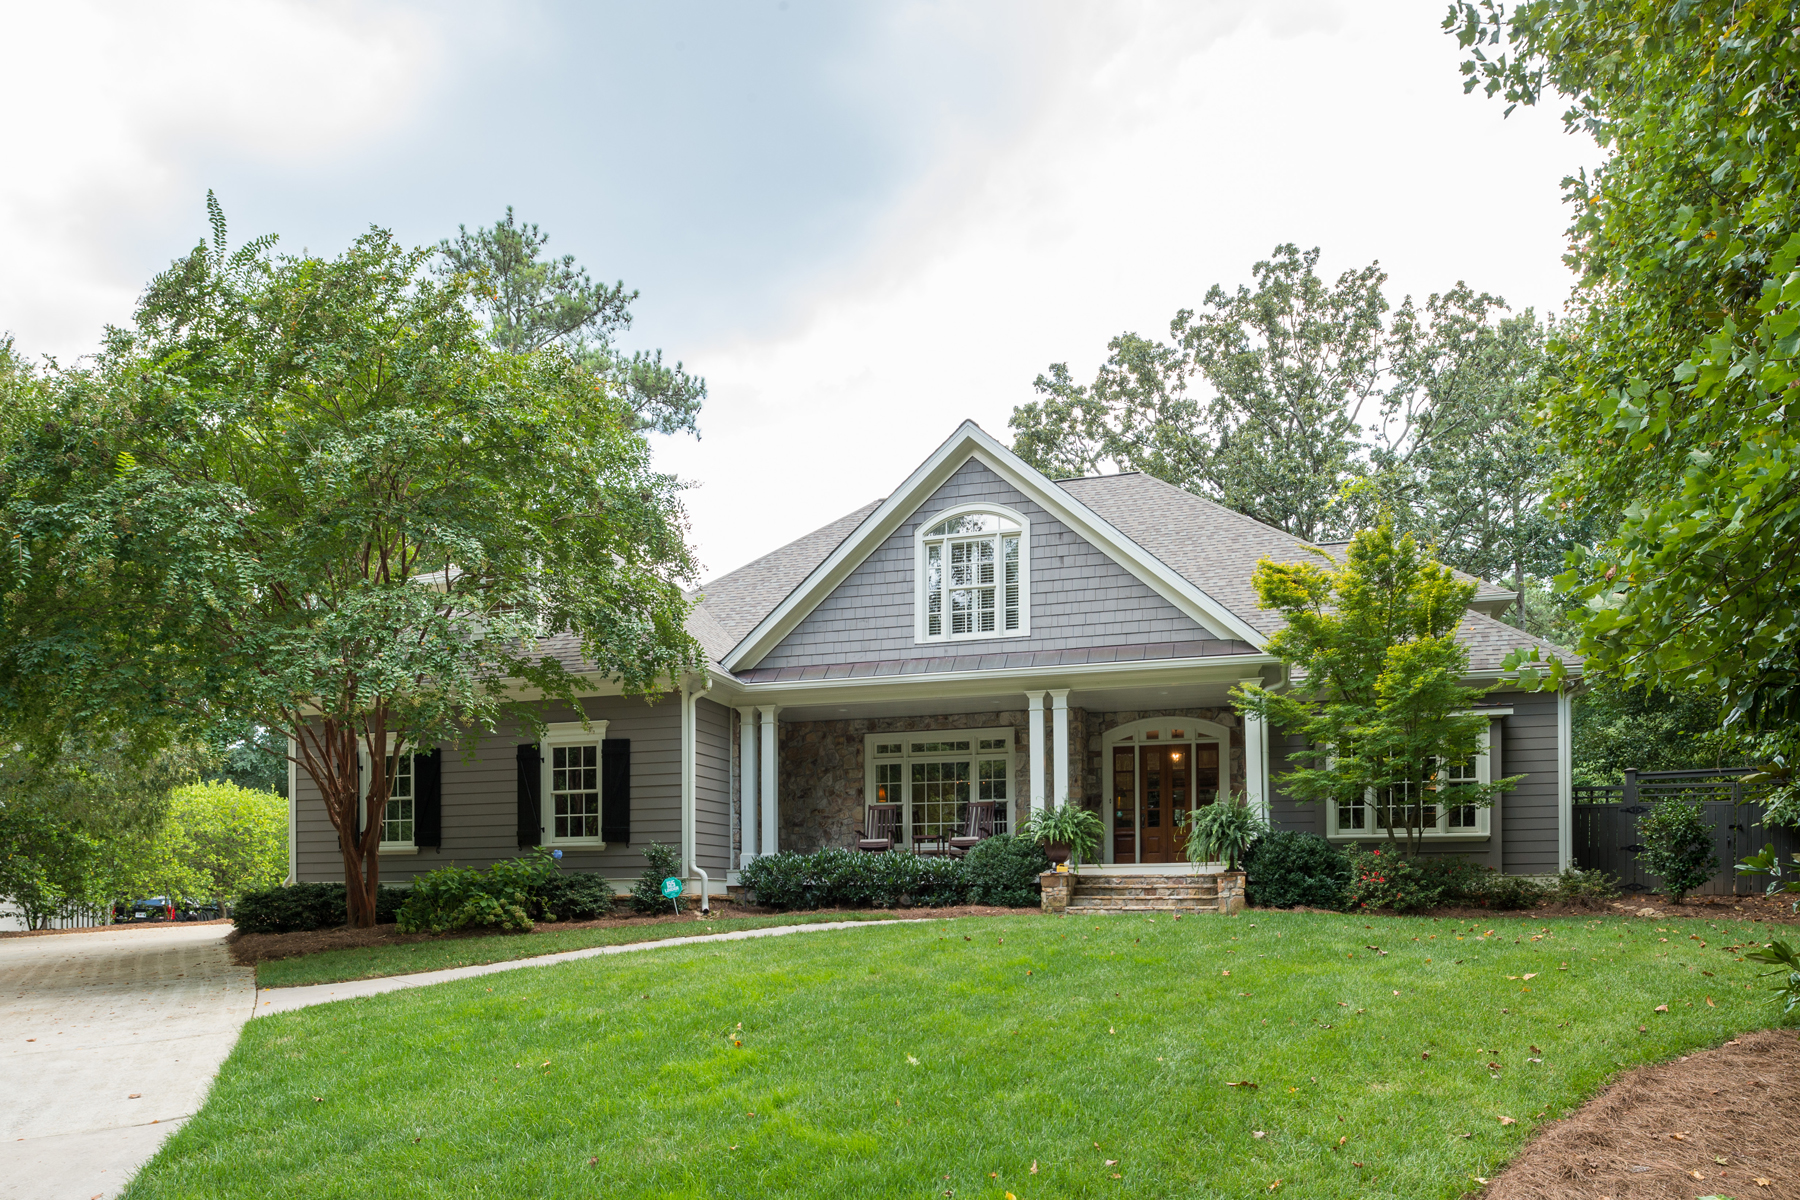 Single Family Home for Sale at Charming Home On Beautifully Landscaped Lot 2730 Orchard Knob SE Vinings, Atlanta, Georgia, 30339 United States